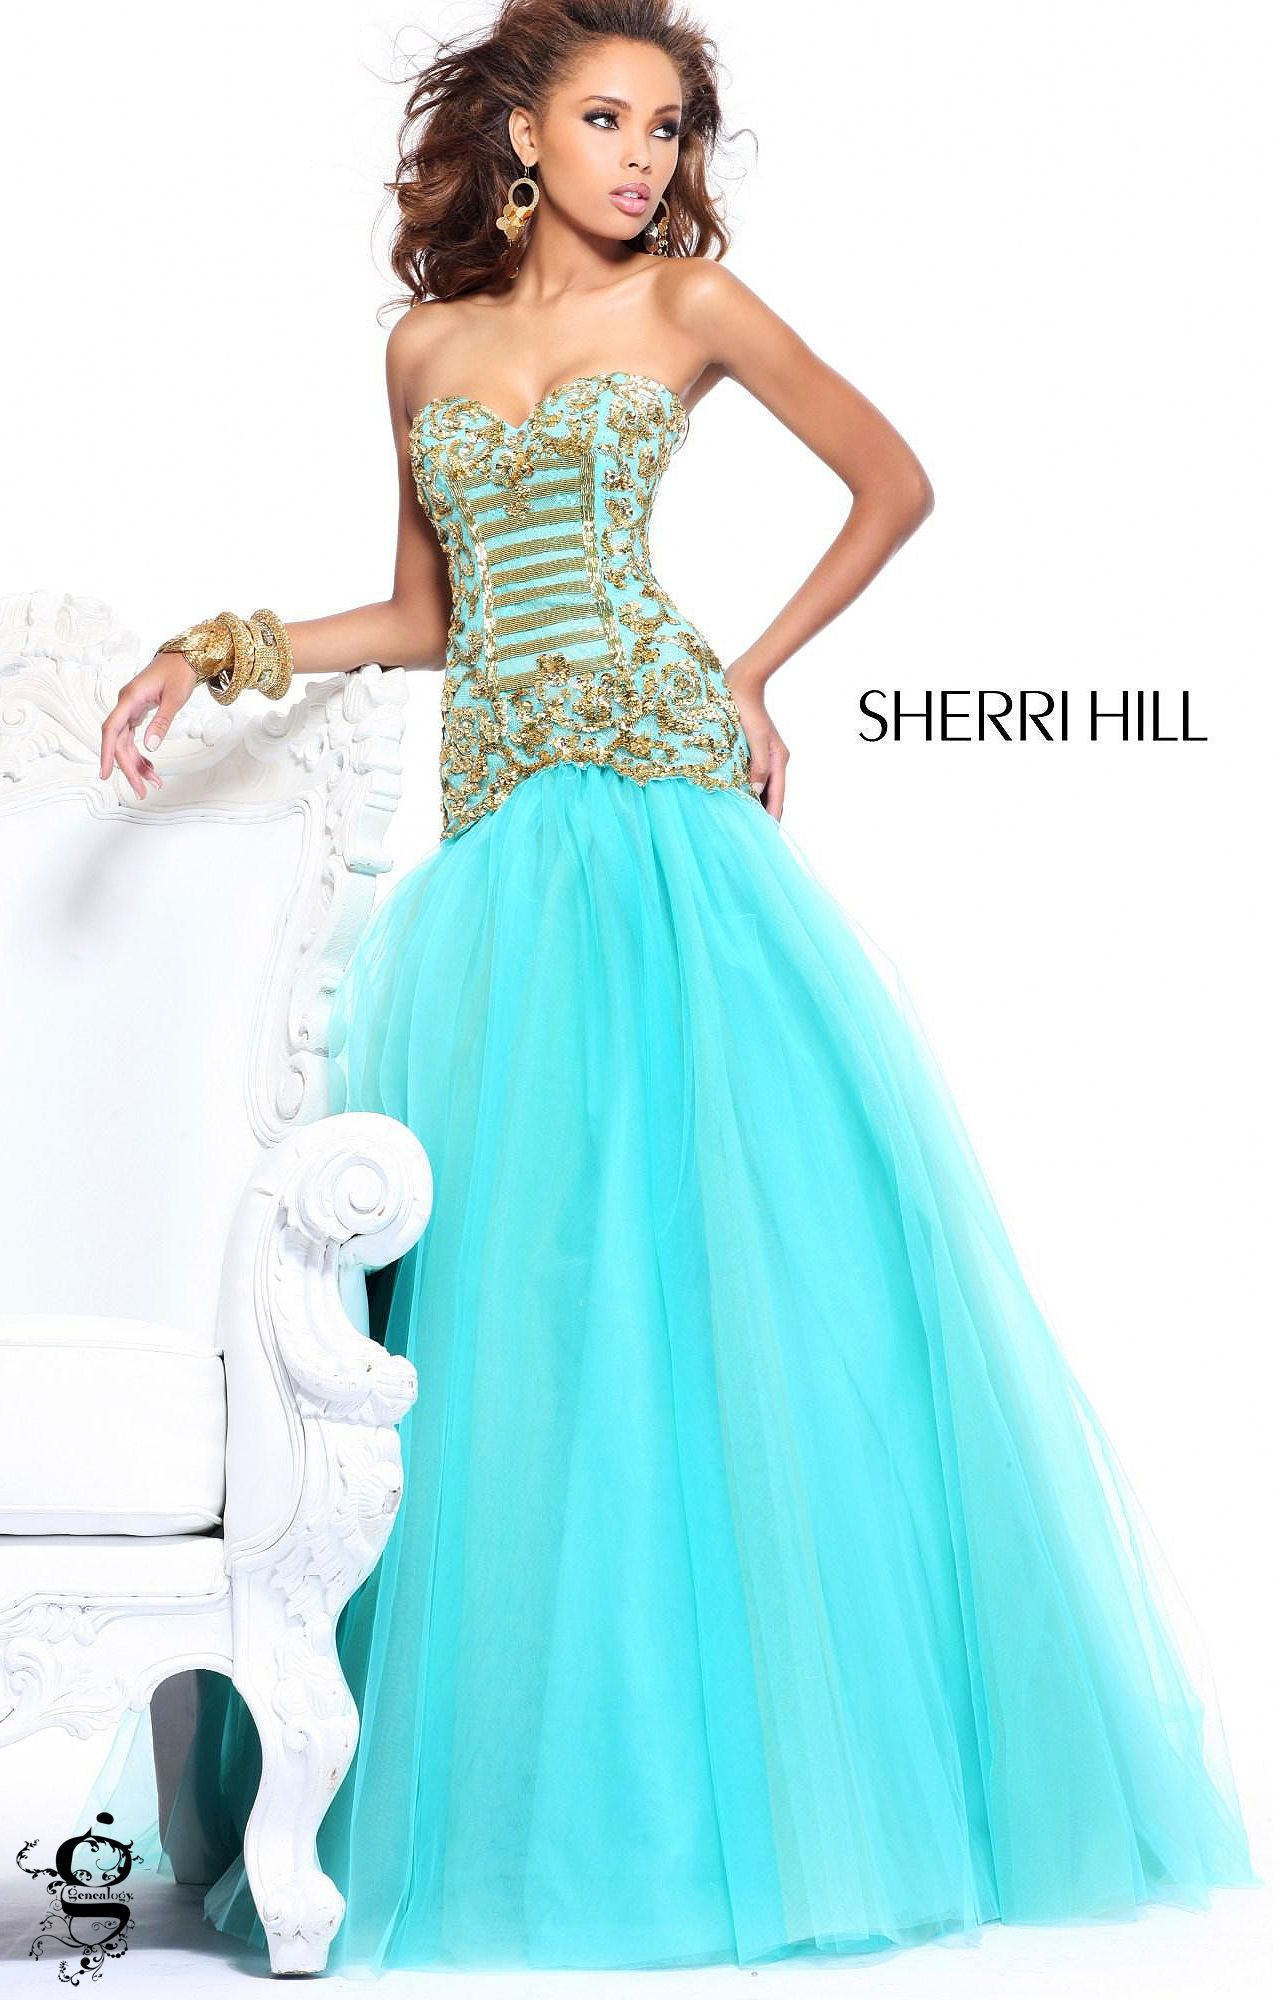 Sherri Hill 2983 | Pageants, Prom and Turquoise